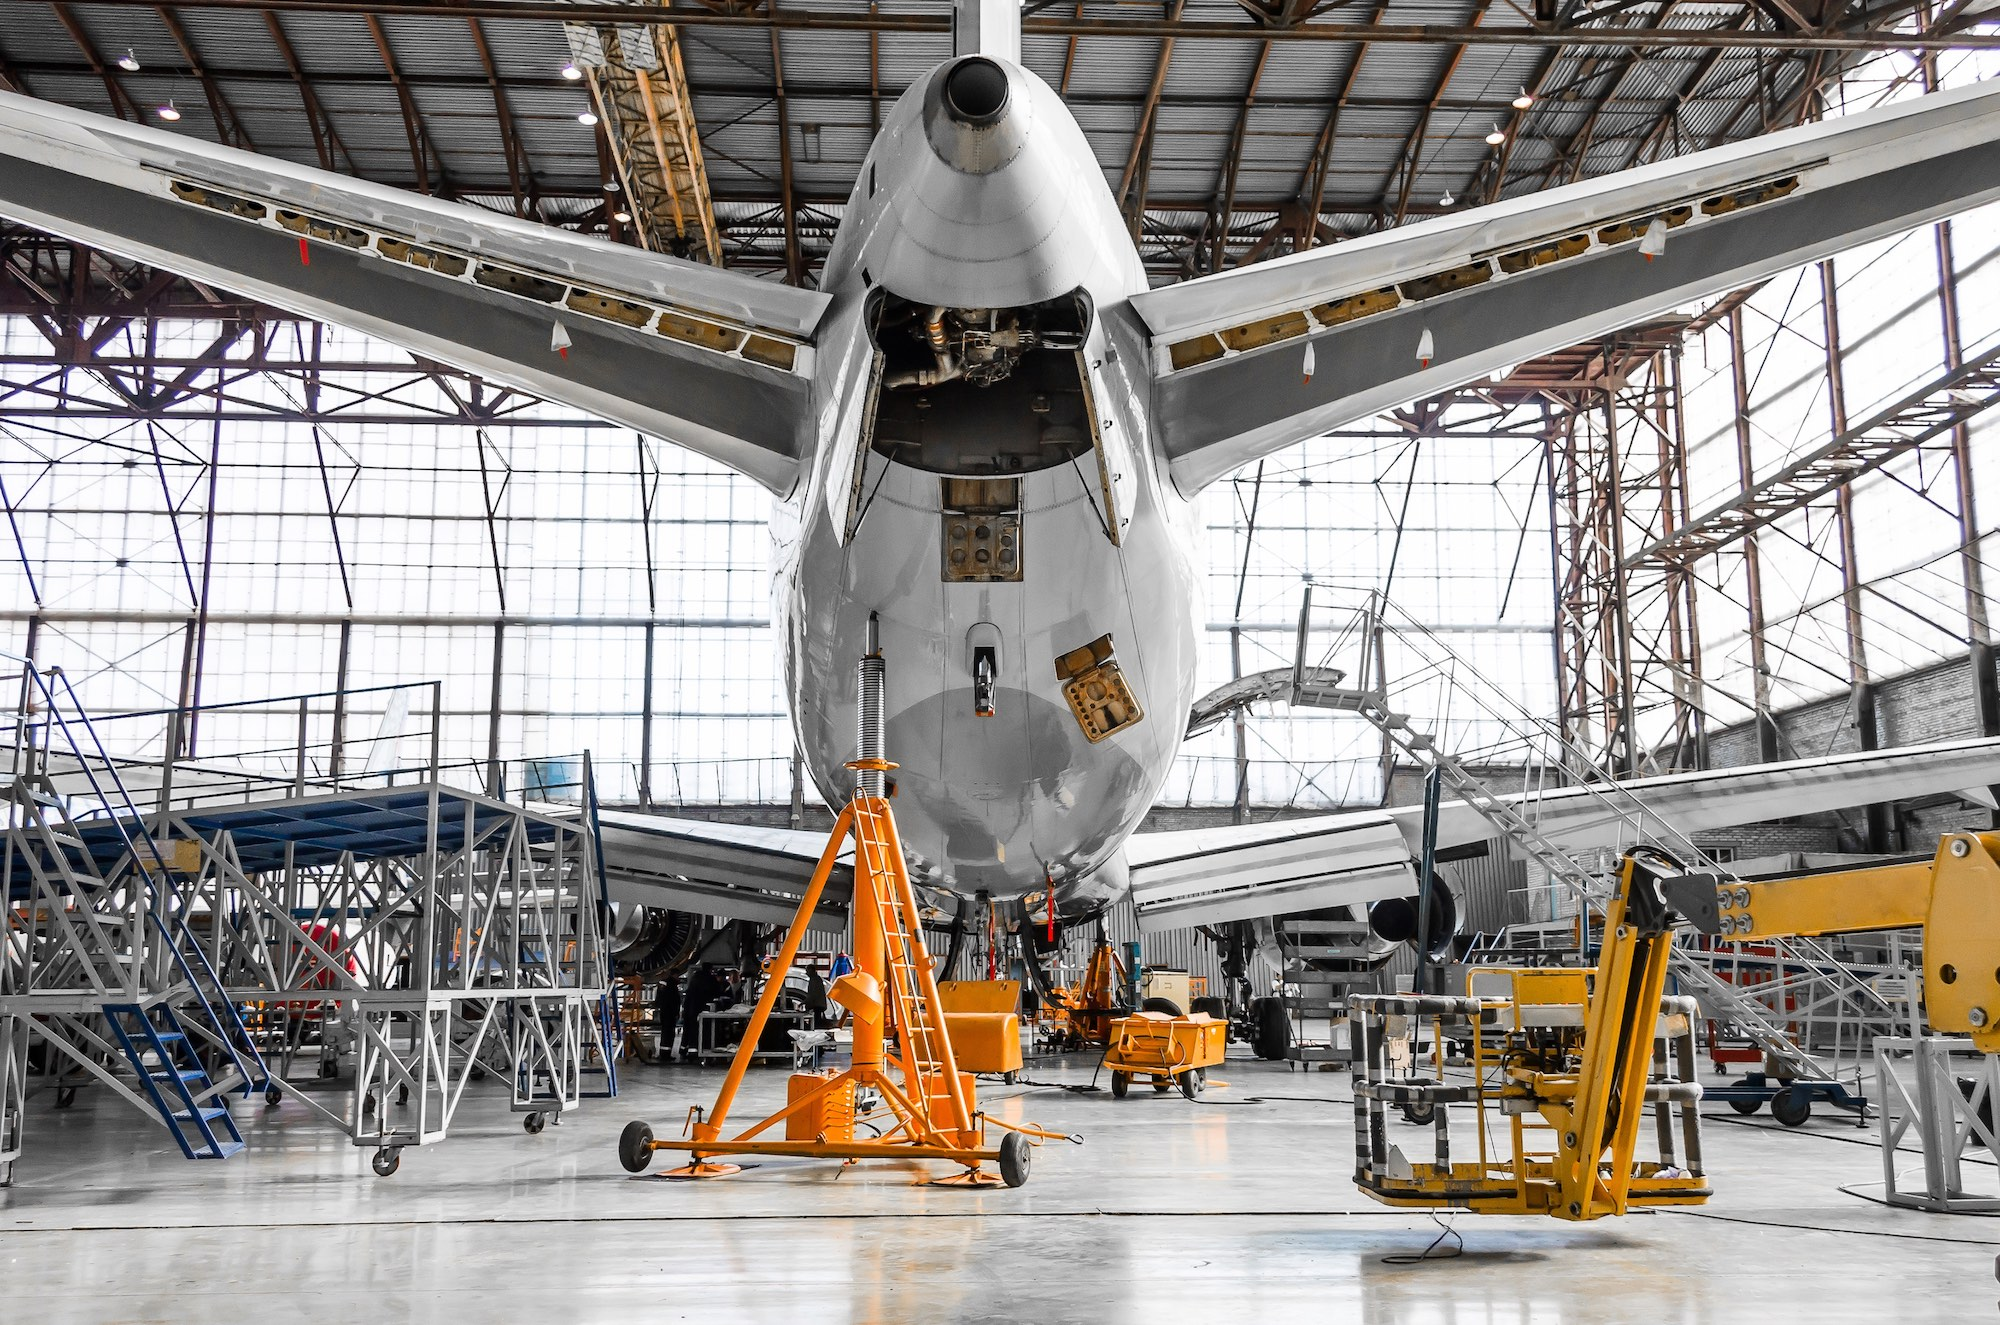 EASA QUALITY COMPLIANCE - MAINTENANCE ORGANIZATION FOR AIRCRAFTS - MOA